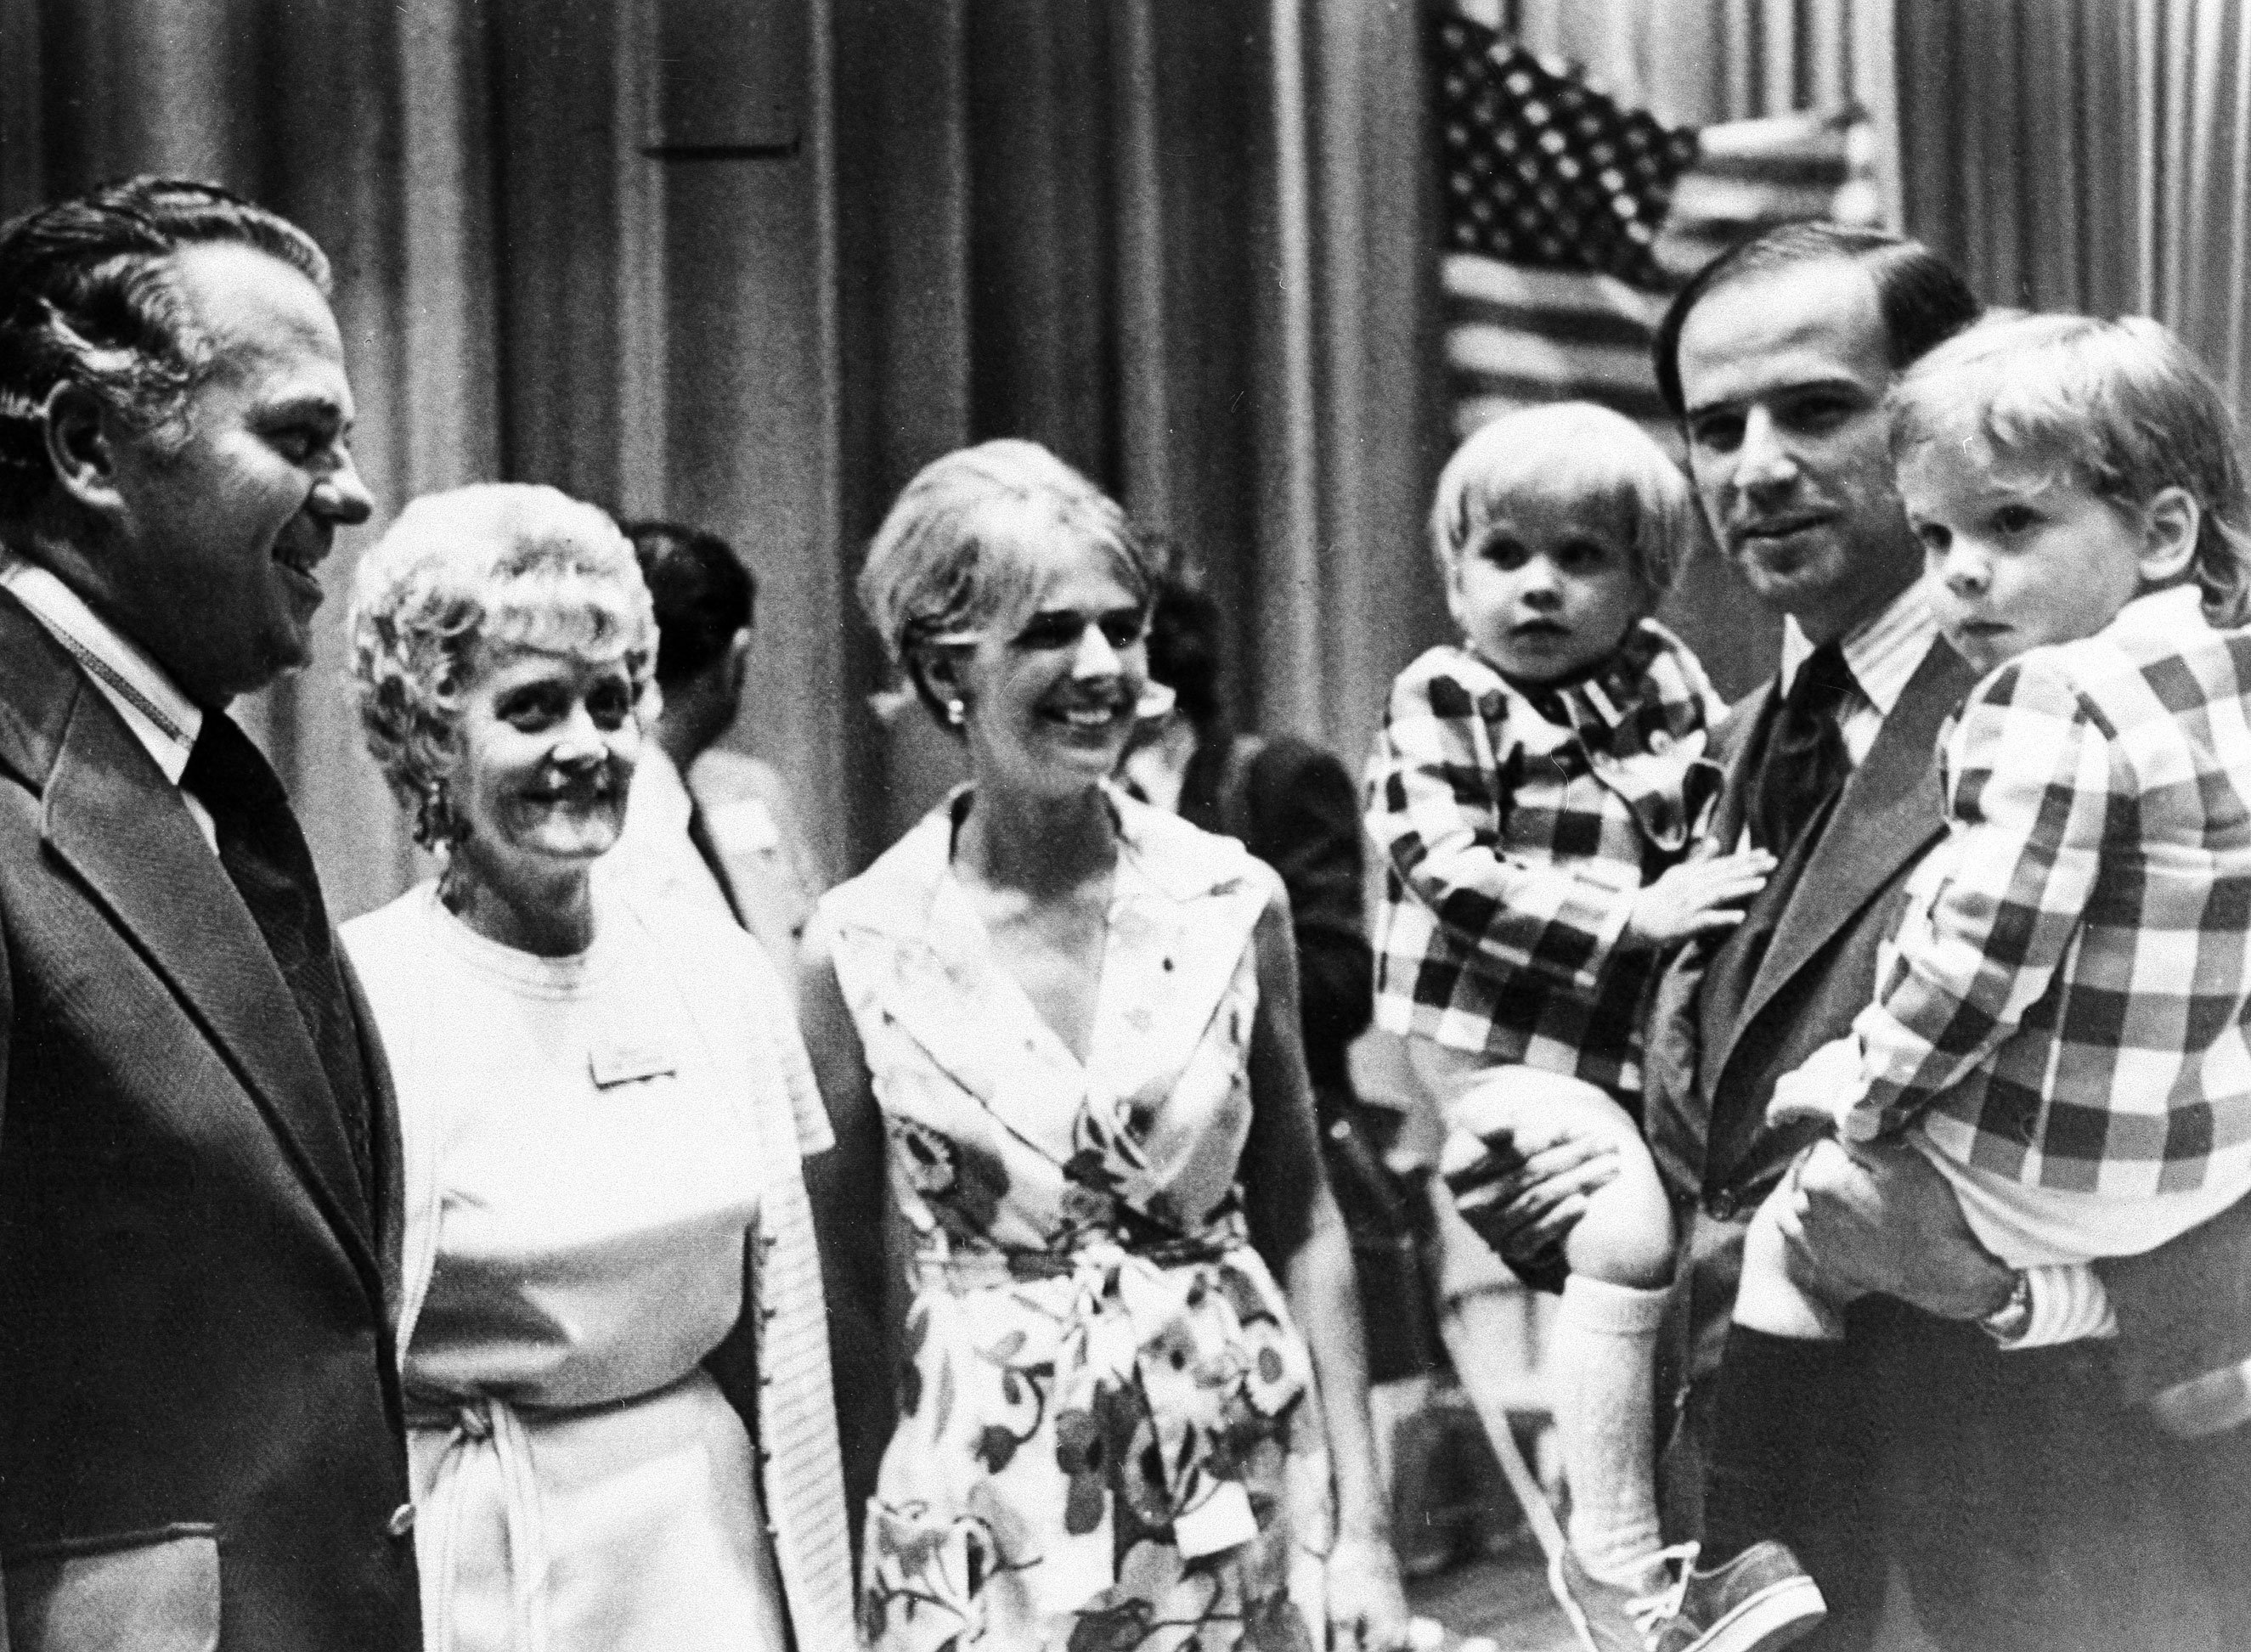 Senator Joe Biden  carries both of his sons, Joseph R. III (left) and Robert H. (right) during an appearance at the Democratic state convention in 1972.  At center is his first wife Neilia.